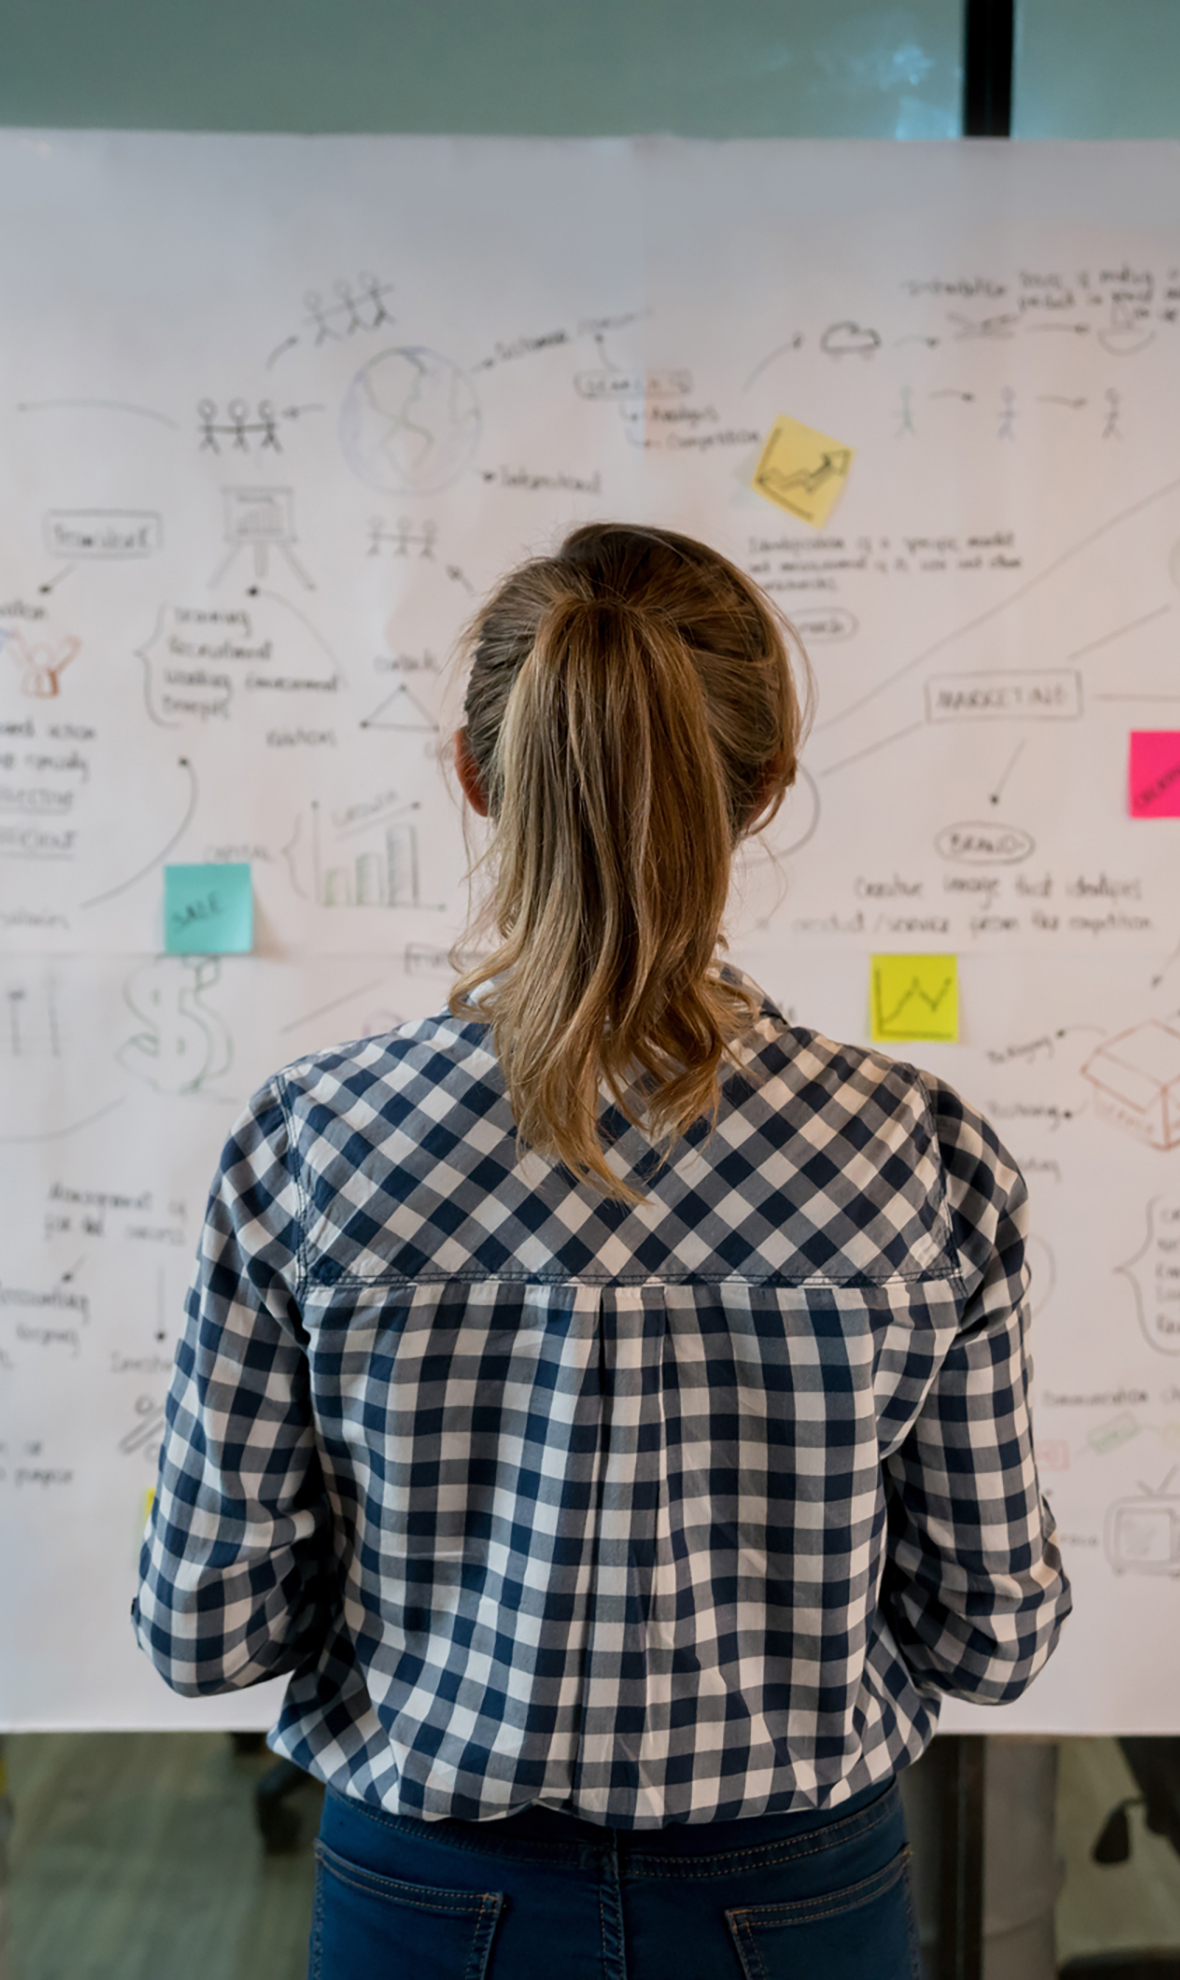 Woman stood looking at whiteboard containing strategies